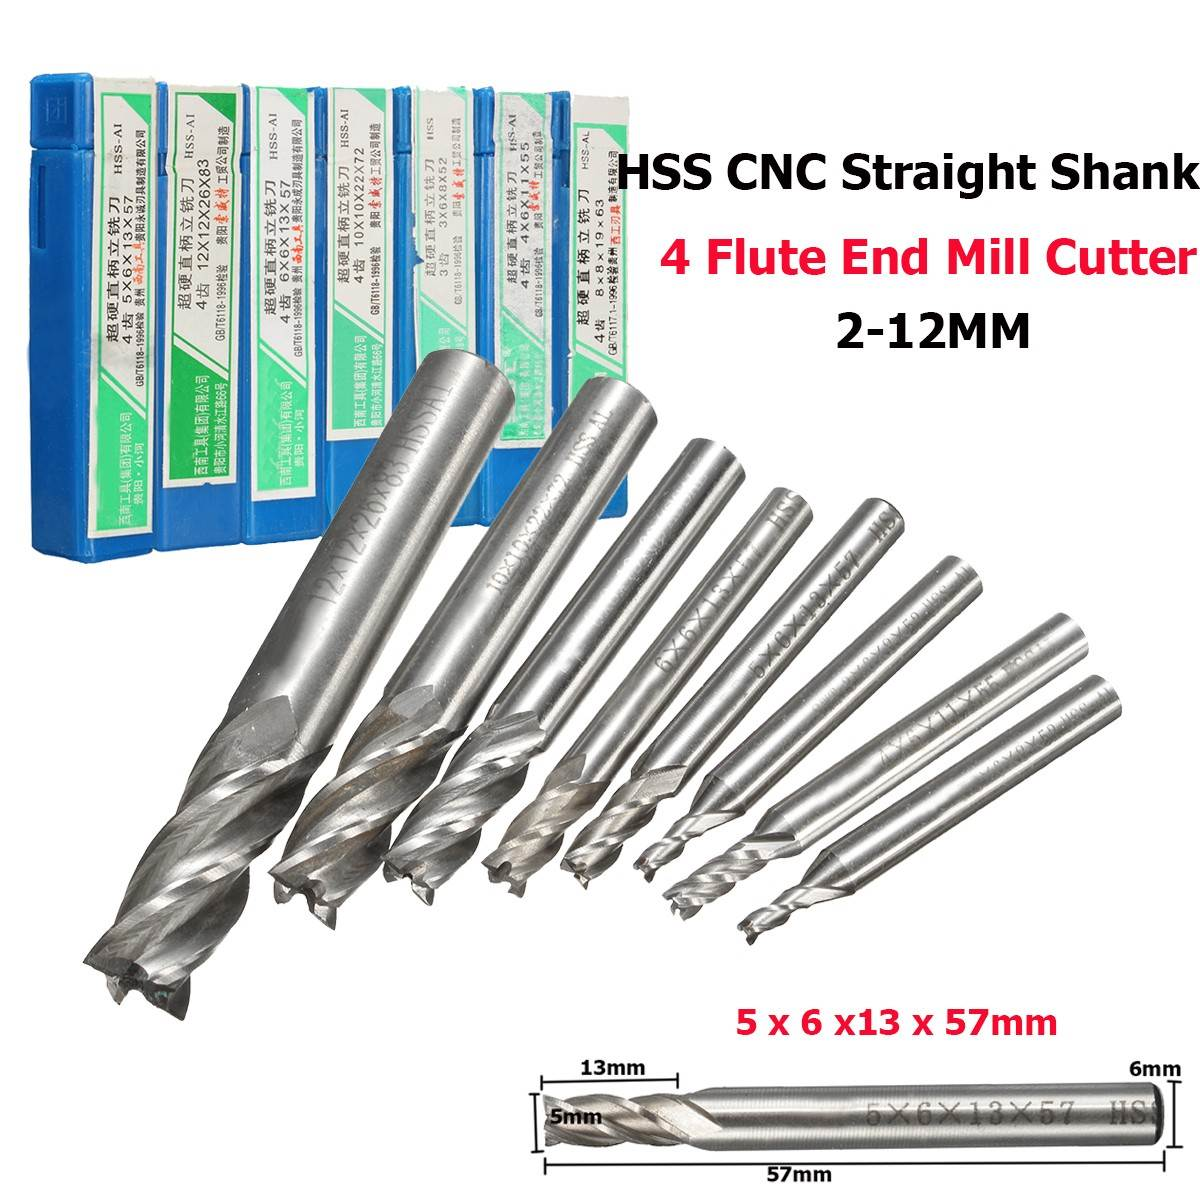 4-12MM Solid Carbide Straight Shank 4Flute End Mill CNC Milling Cutter Drill Bit